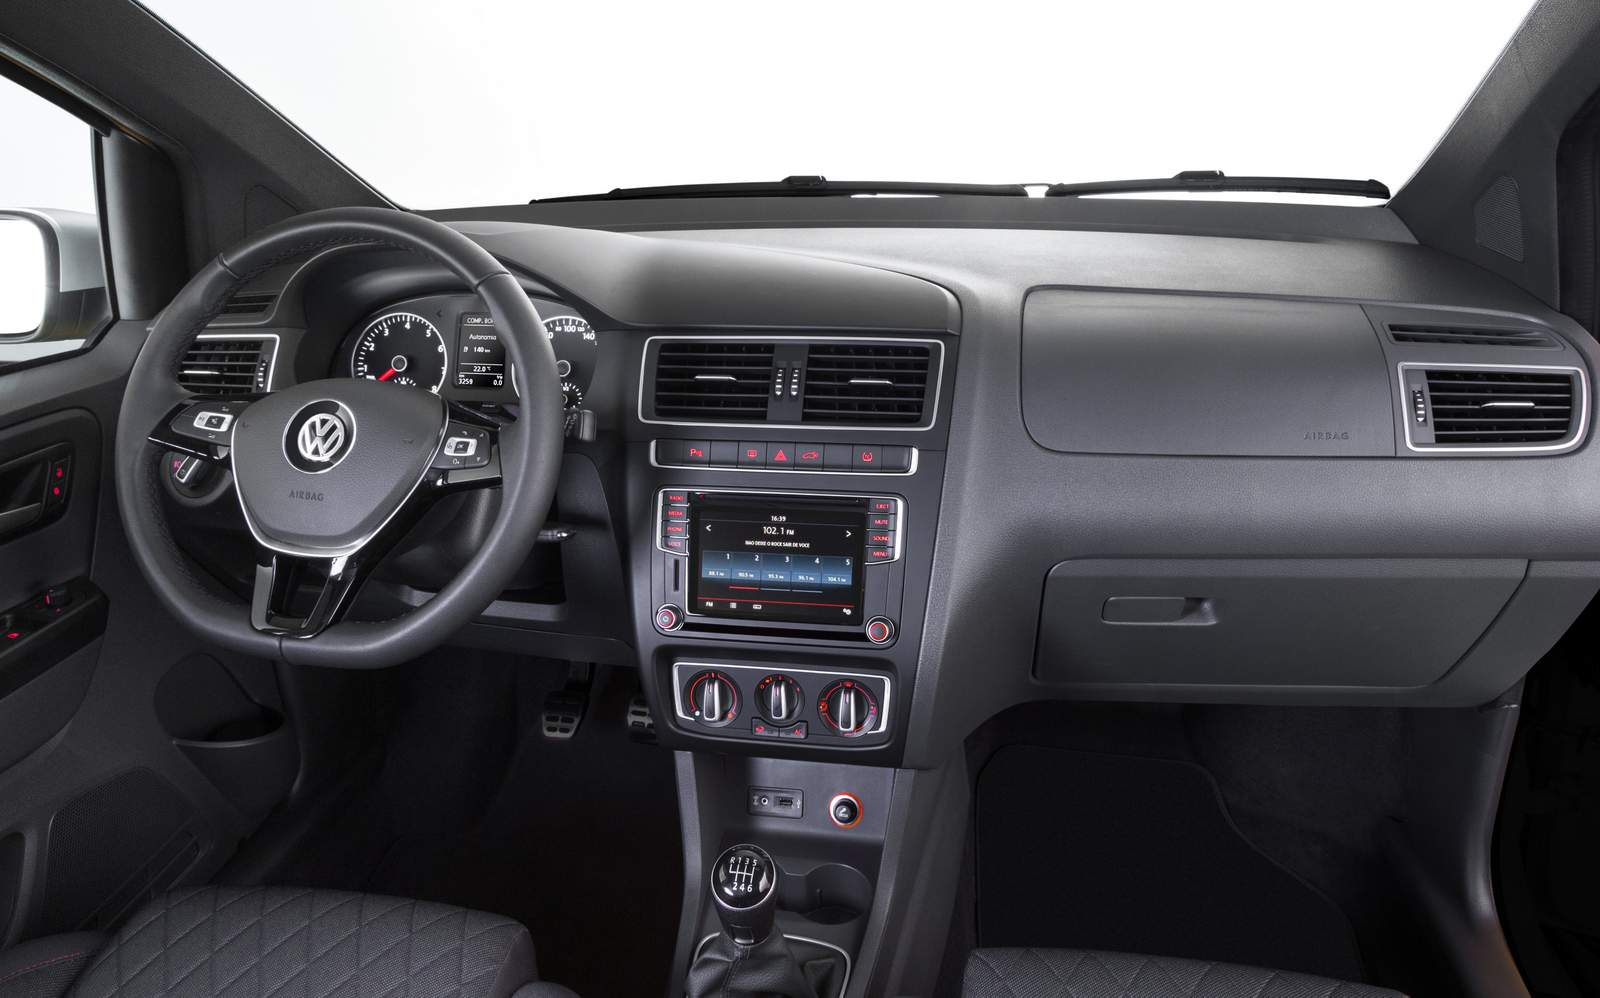 VW Fox 2016 interior